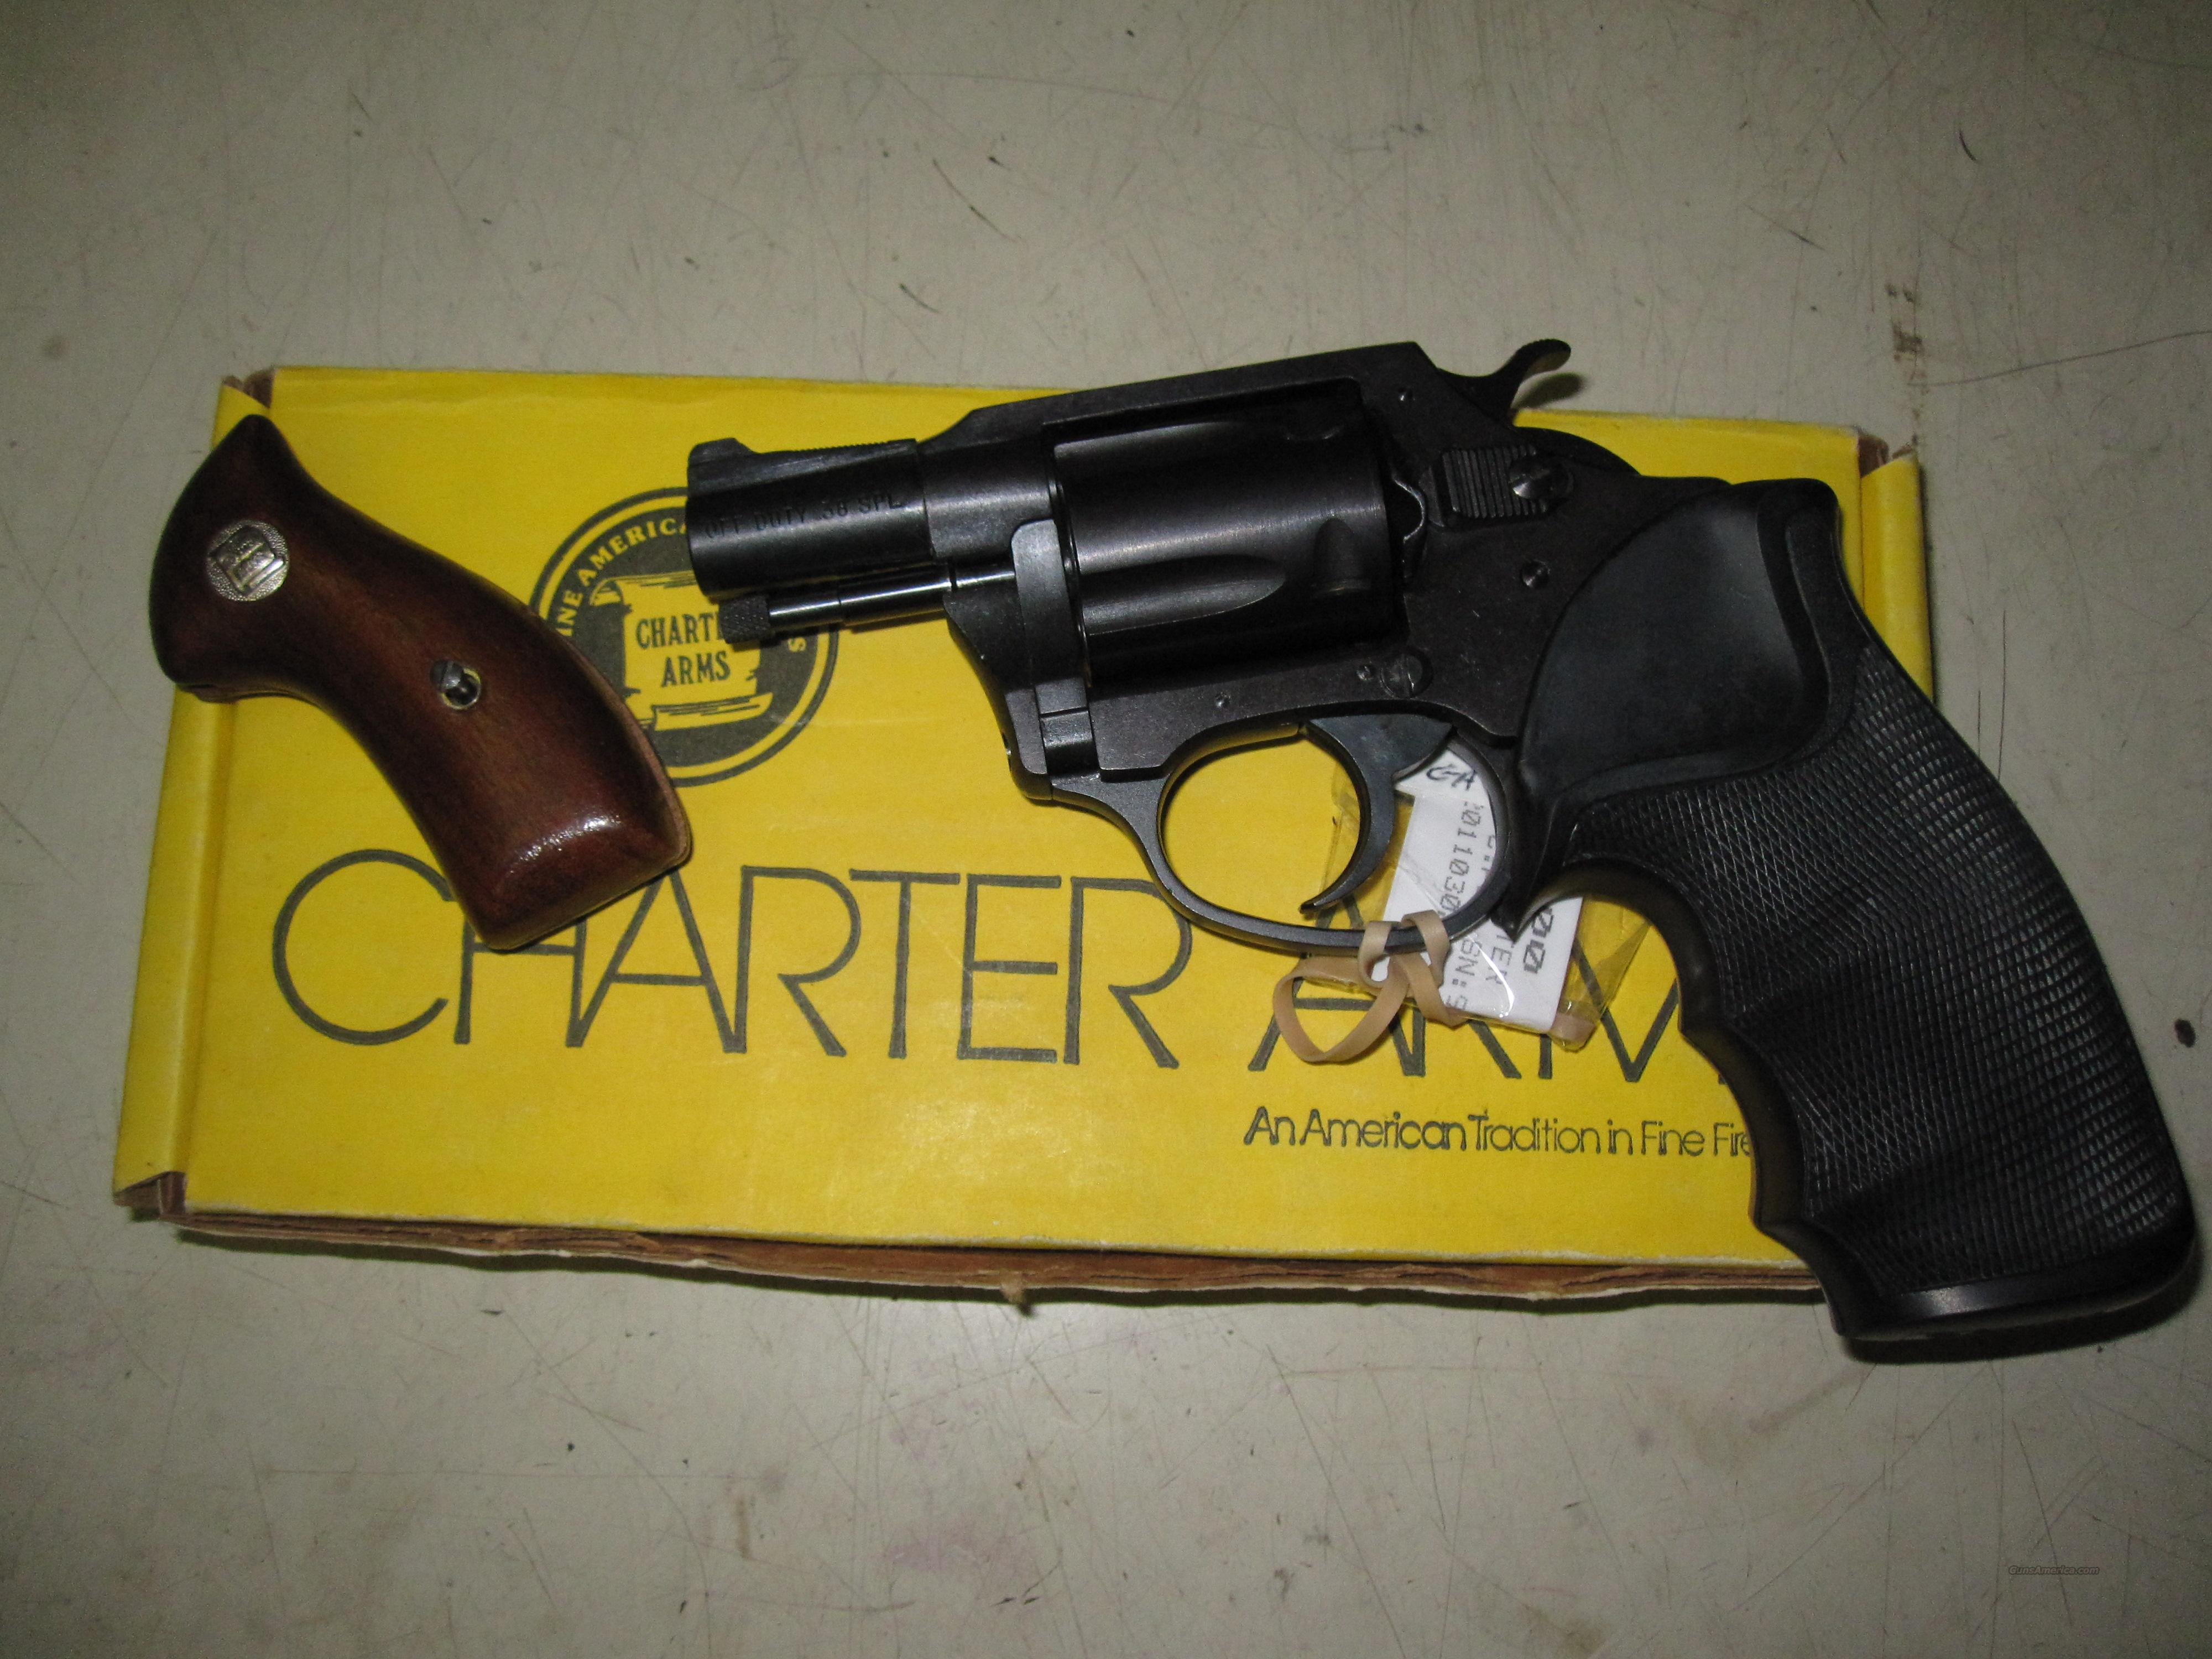 "Charter arms ""off Duty"" 38 special 5 shot revolver w/orig box   Guns > Pistols > Charter Arms Revolvers"